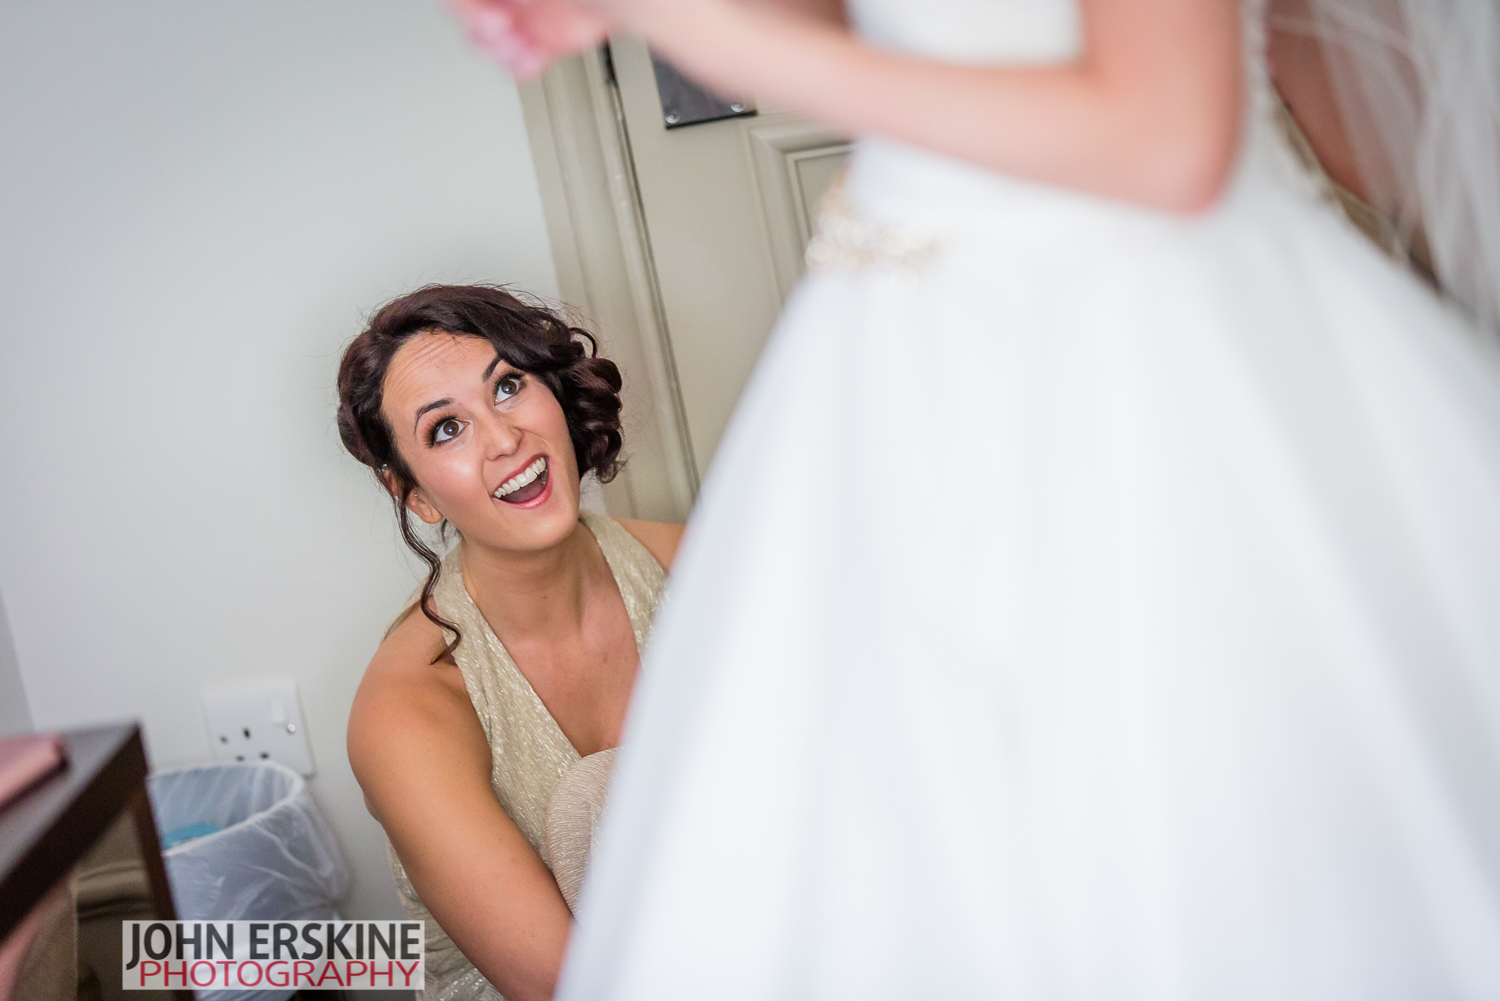 Checking the Bridal Gown Bridesmaid Laughing